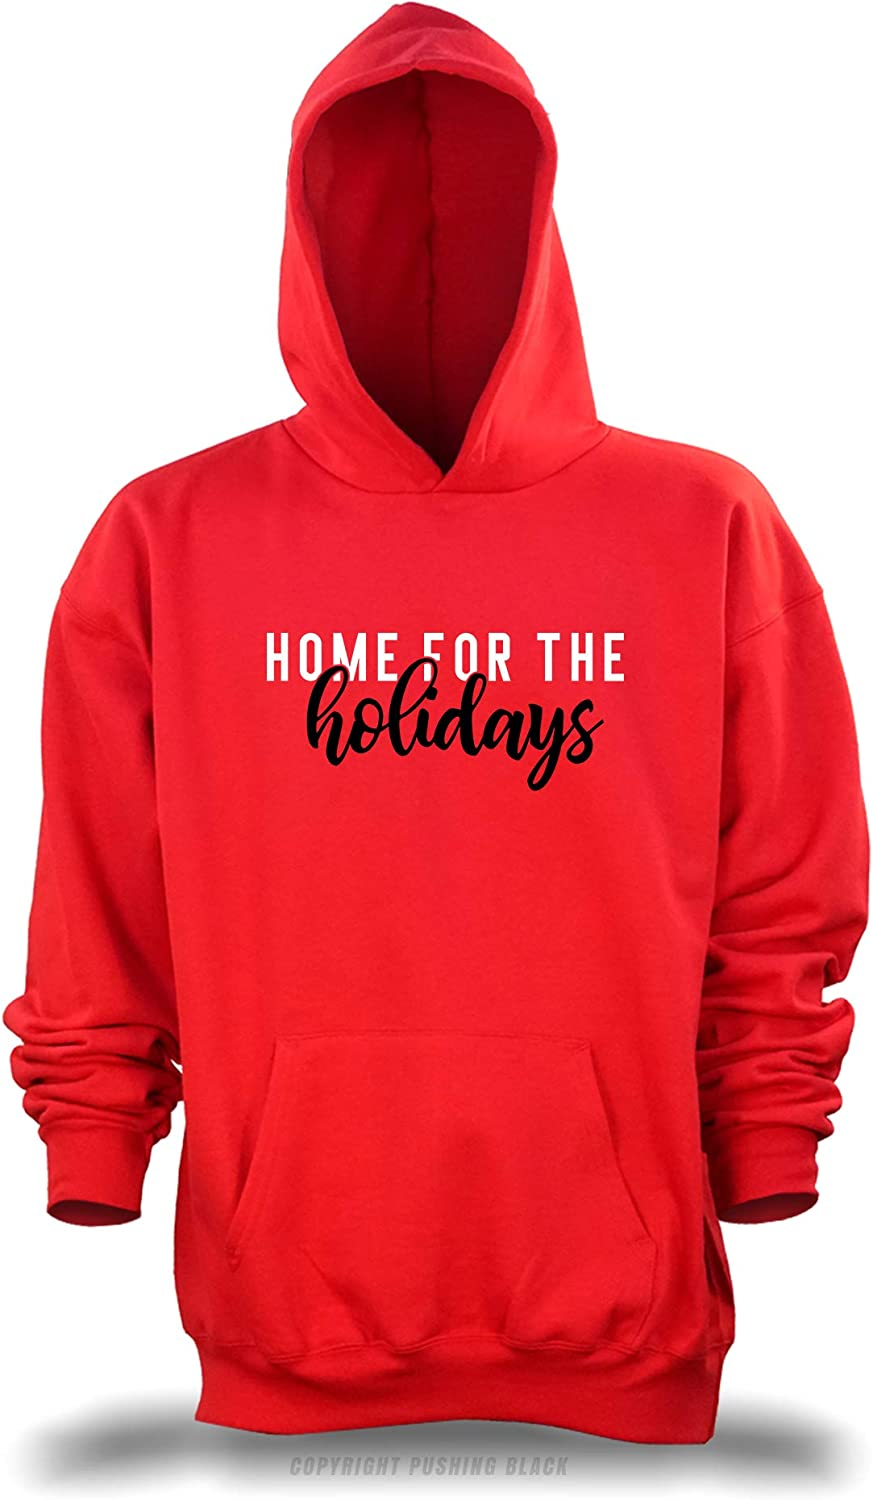 PUSHING BLACK Home for The Holidays Unisex Pullover Hoodie